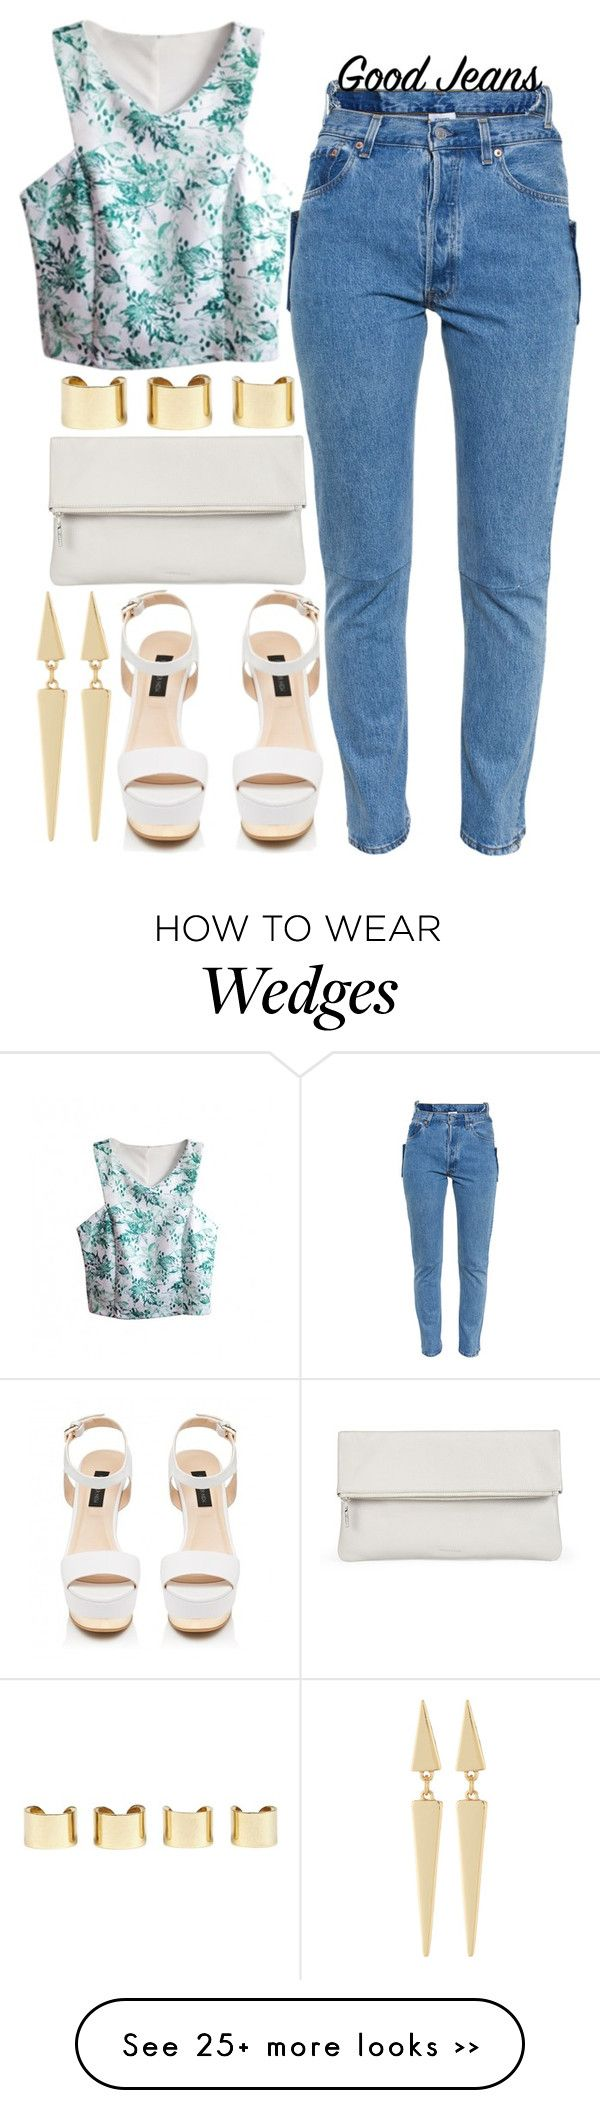 """878."" by adc421 on Polyvore"